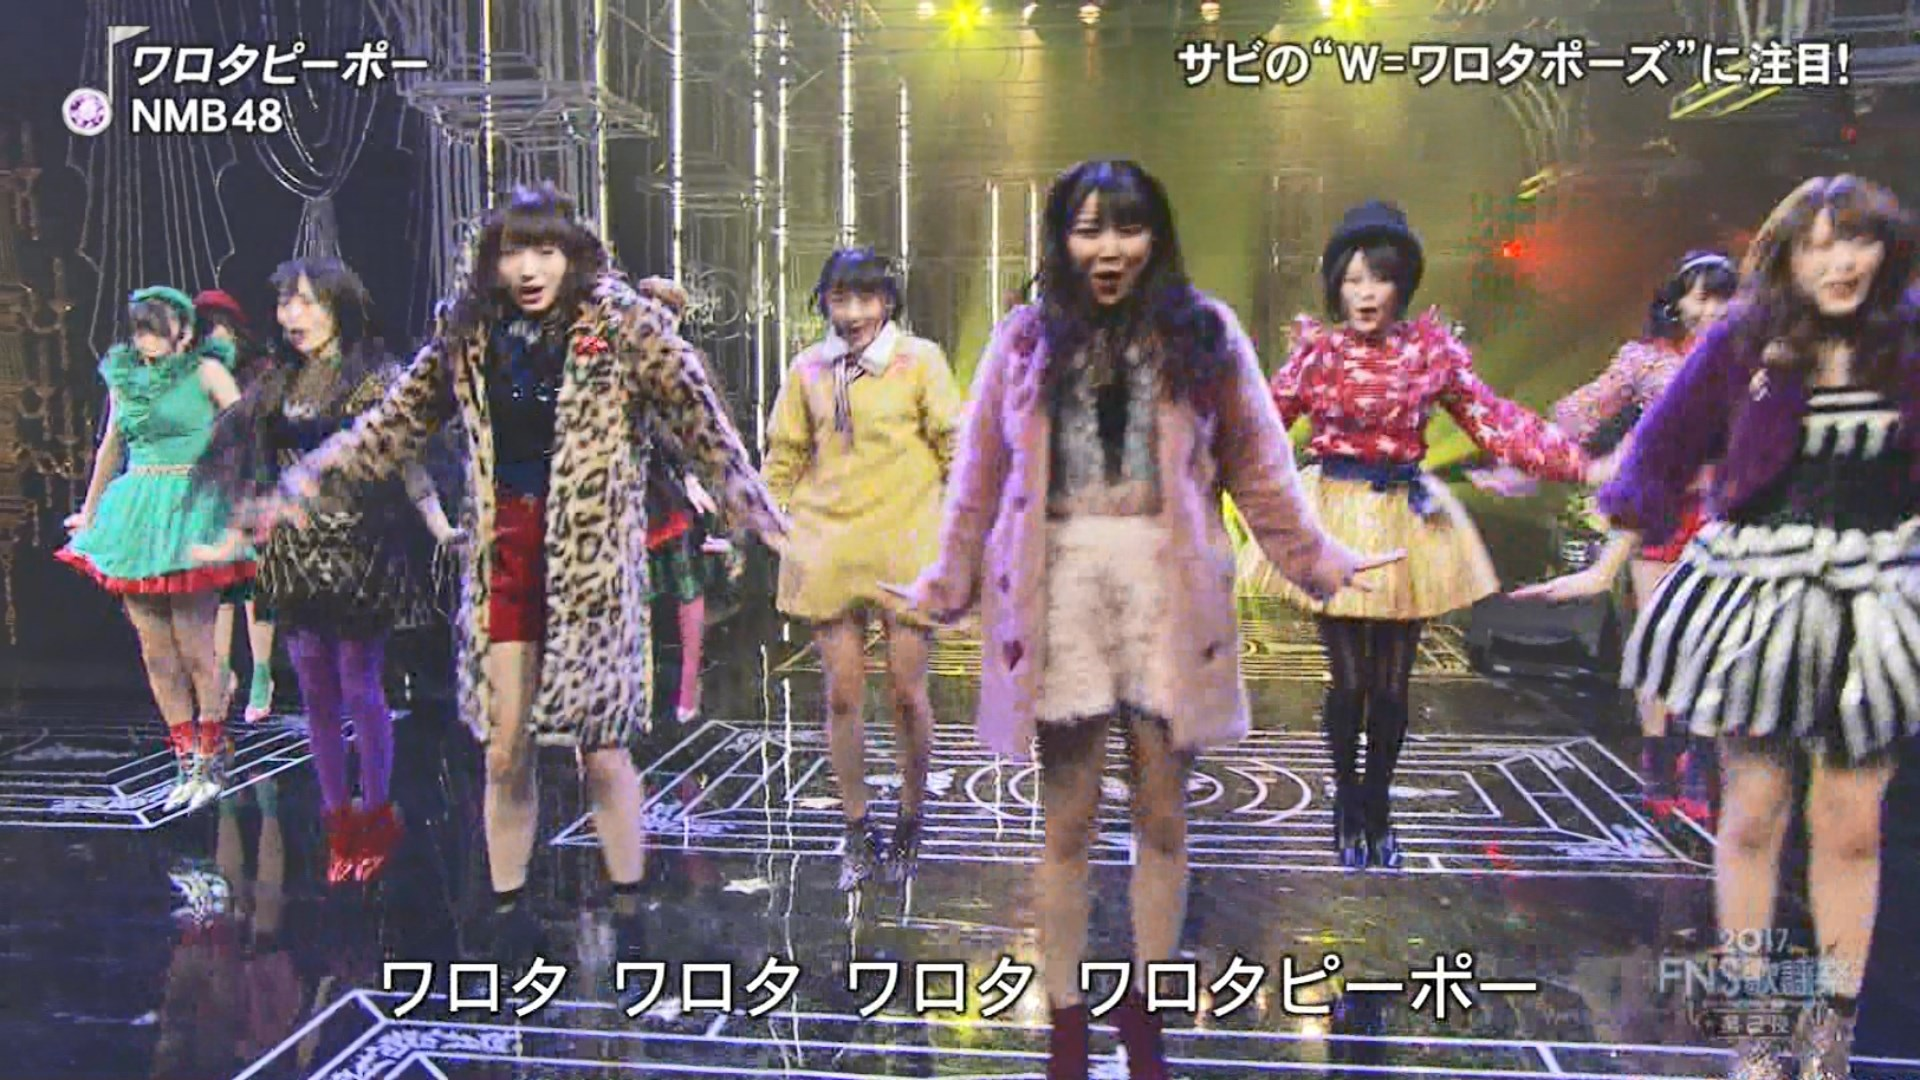 2017FNS歌謡祭第2夜・NMB48ワロタピーポーキャプ-064